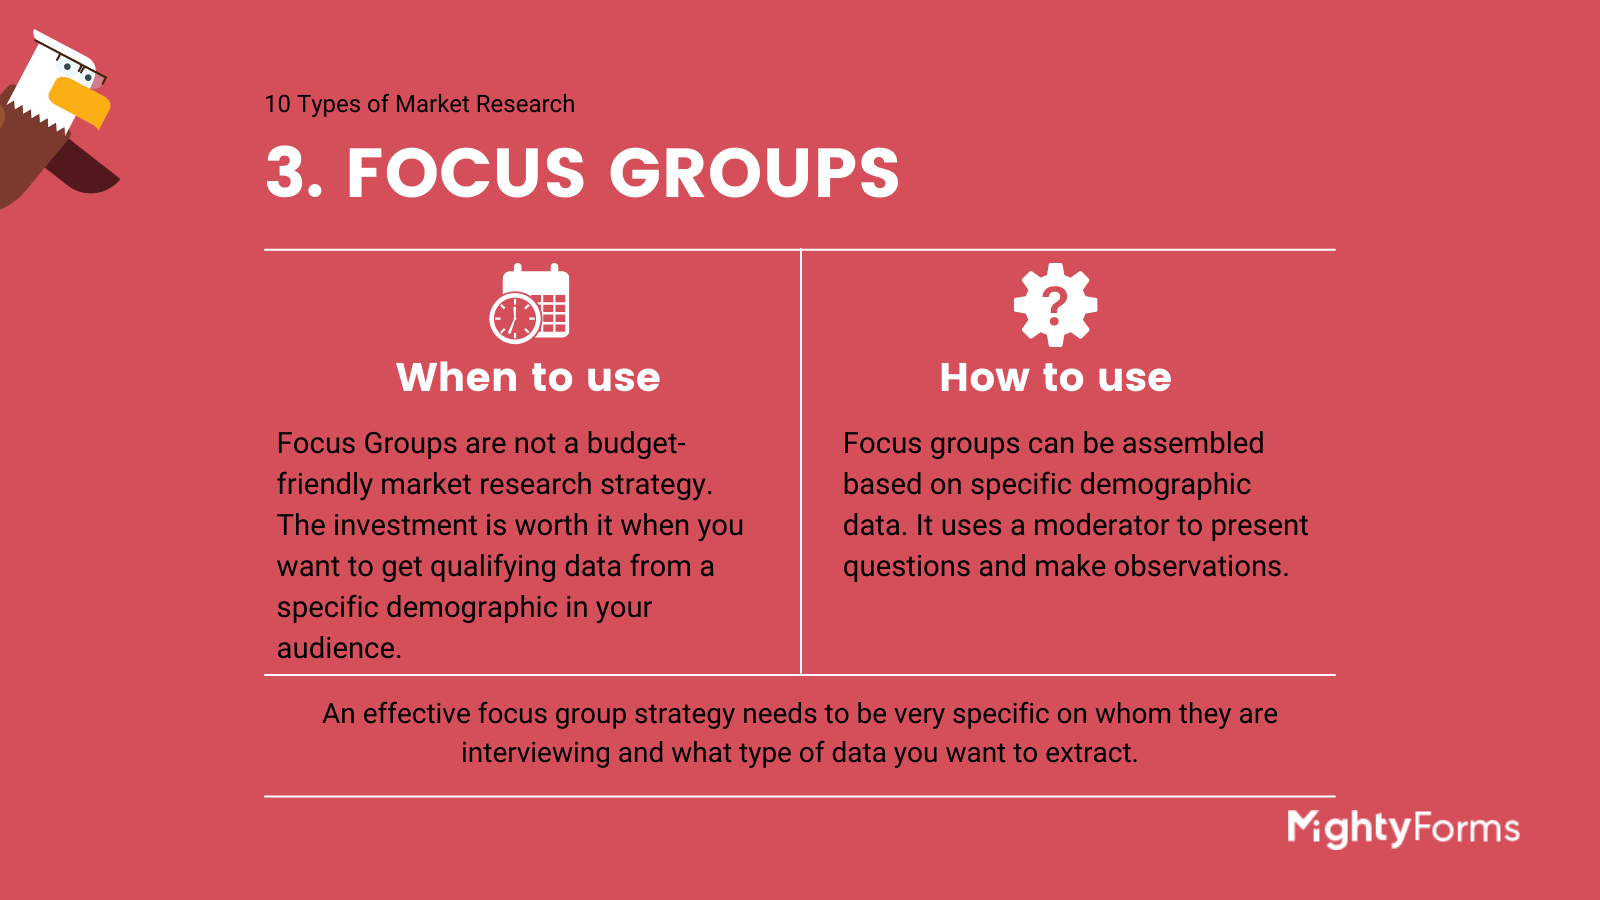 Types of Market Research - Focus Groups - infographic_ MightyForms